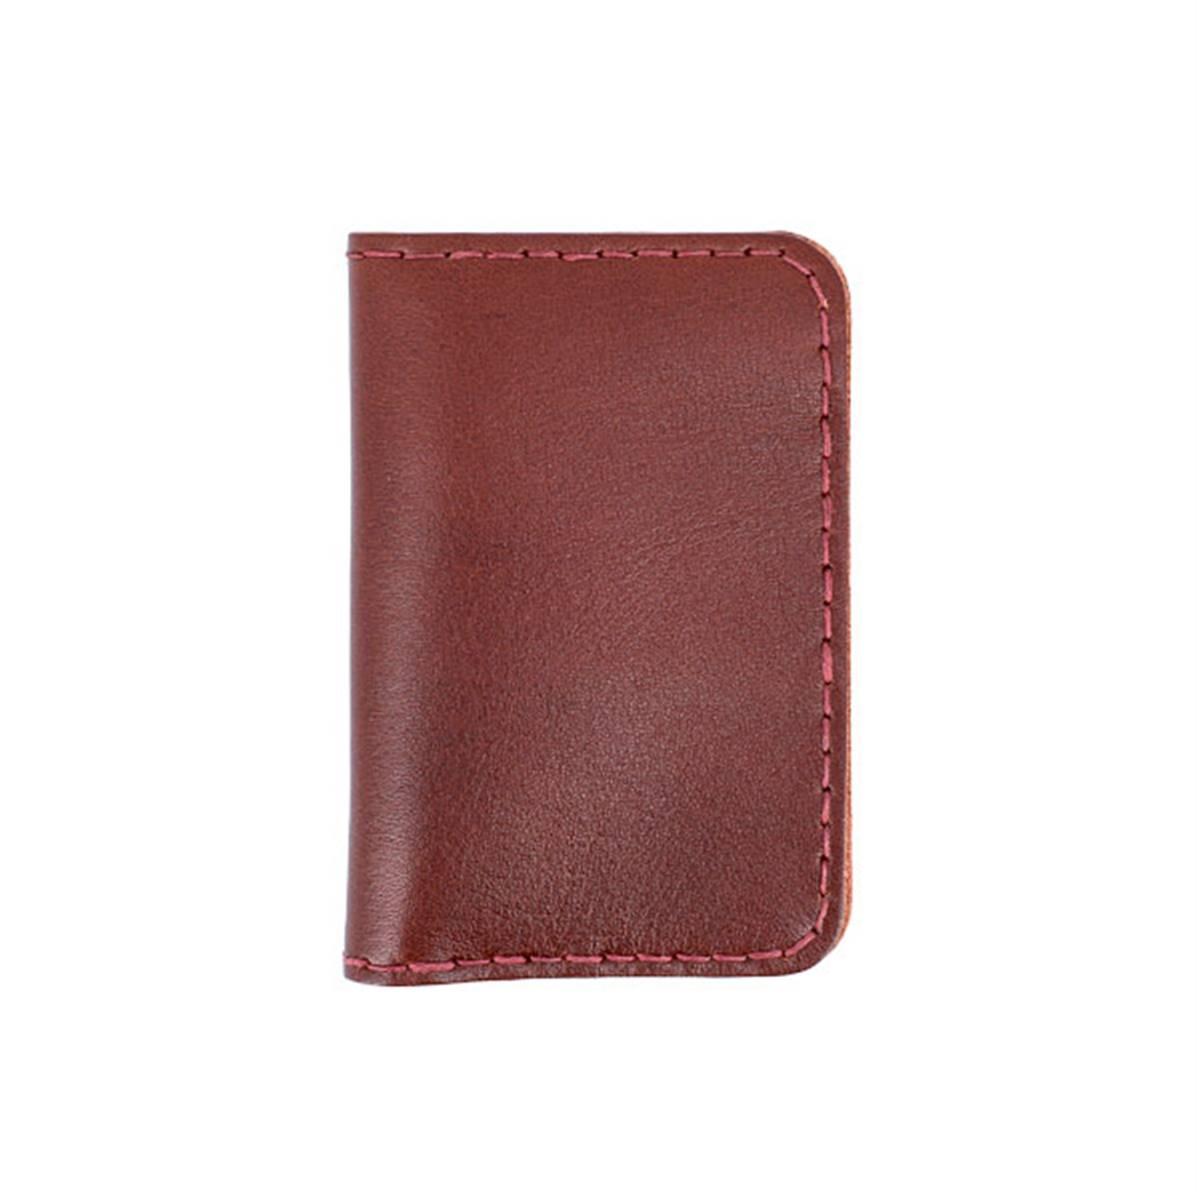 Kitencuir porte cartes double marron acajou fil bordeaux for Porte 15 bordeaux